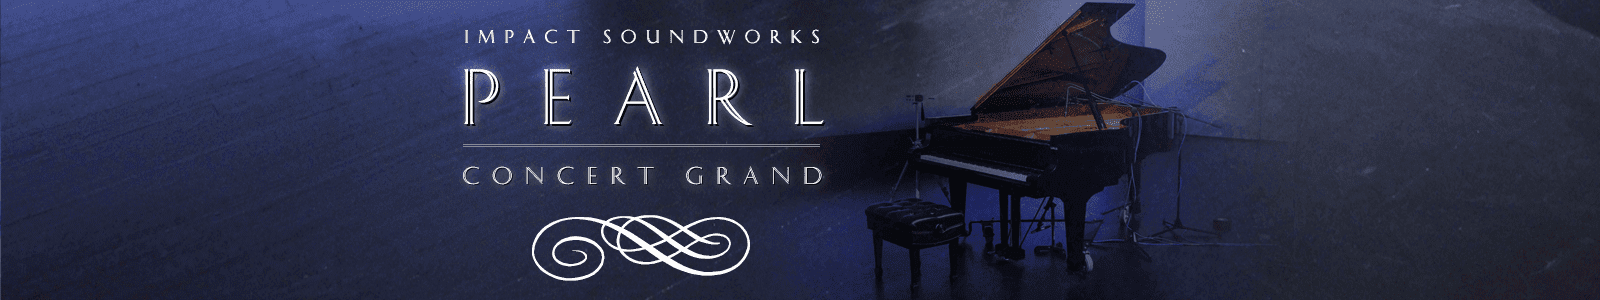 Pearl Concert Grand by Impact Soundworks (VST, AU, AAX)